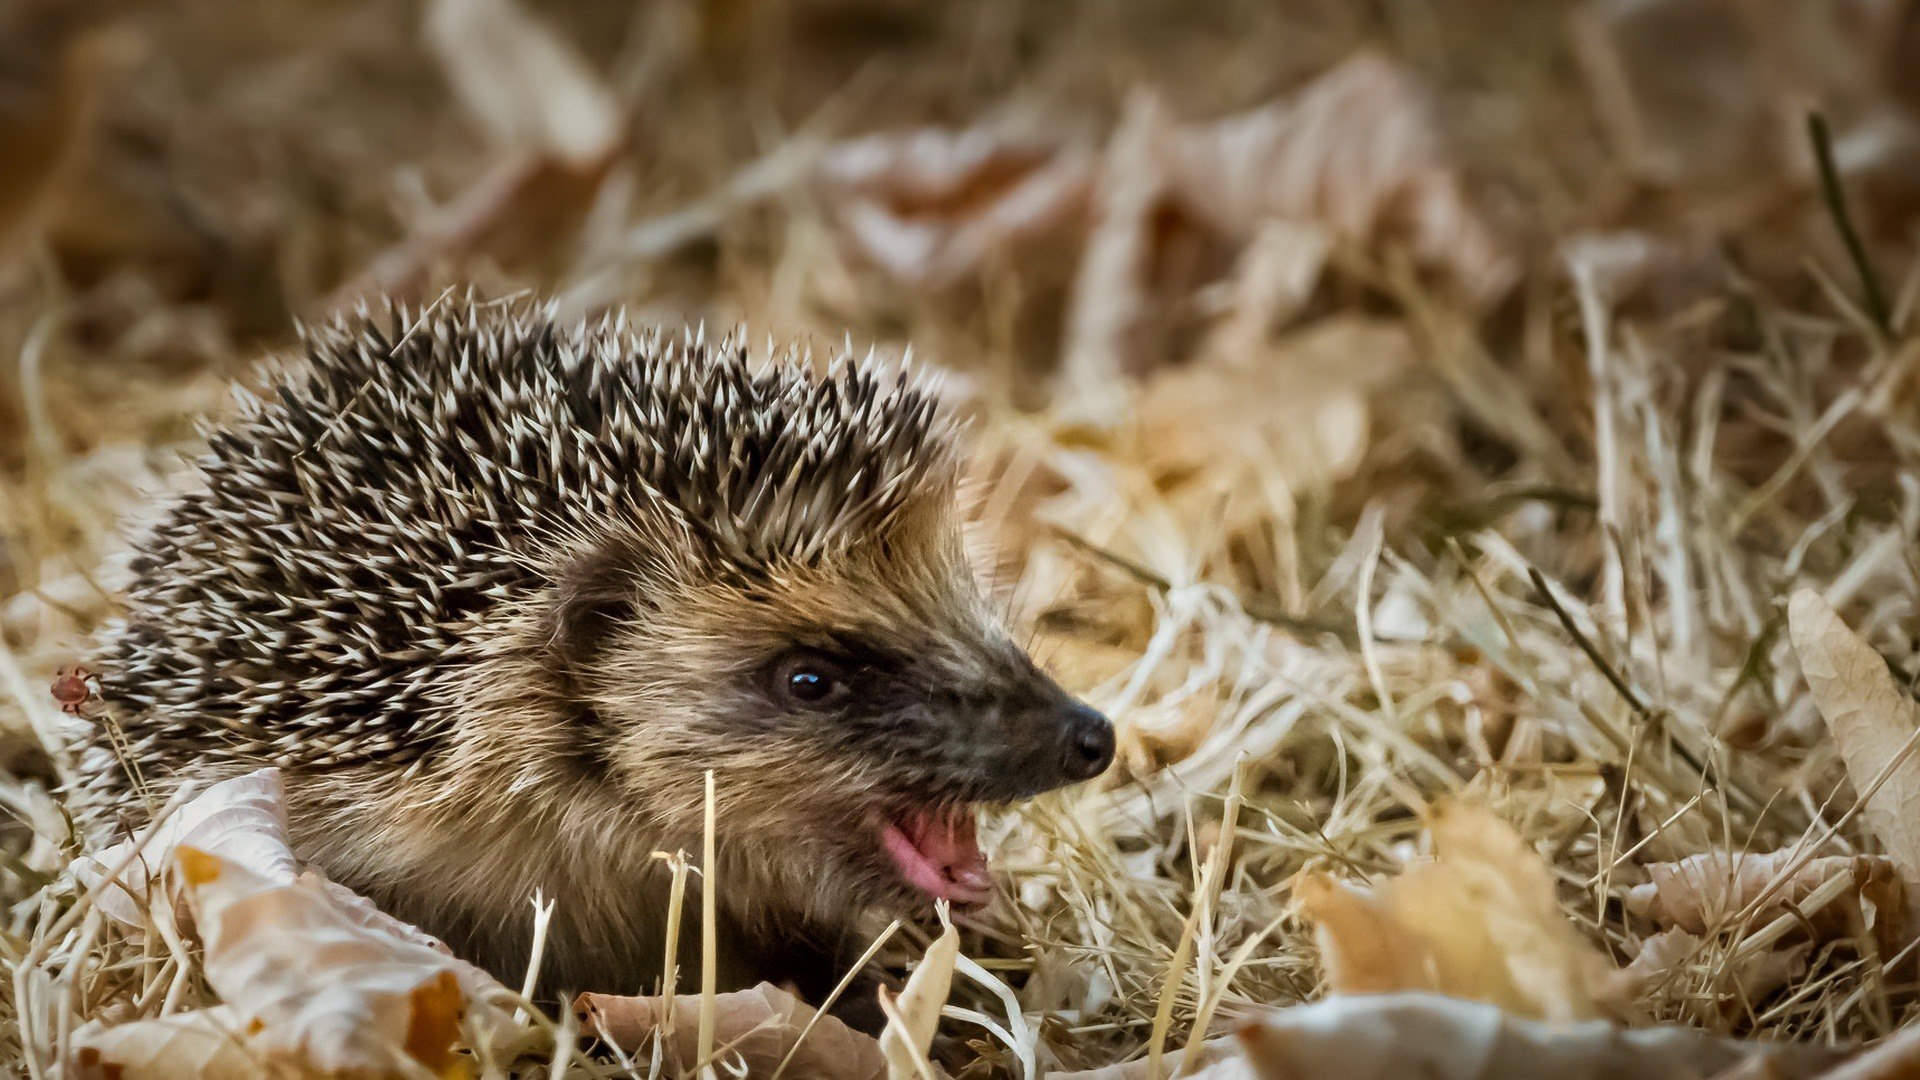 Wallpaper Hedgehog, open mouth, dry leaves 1920x1080 Full HD